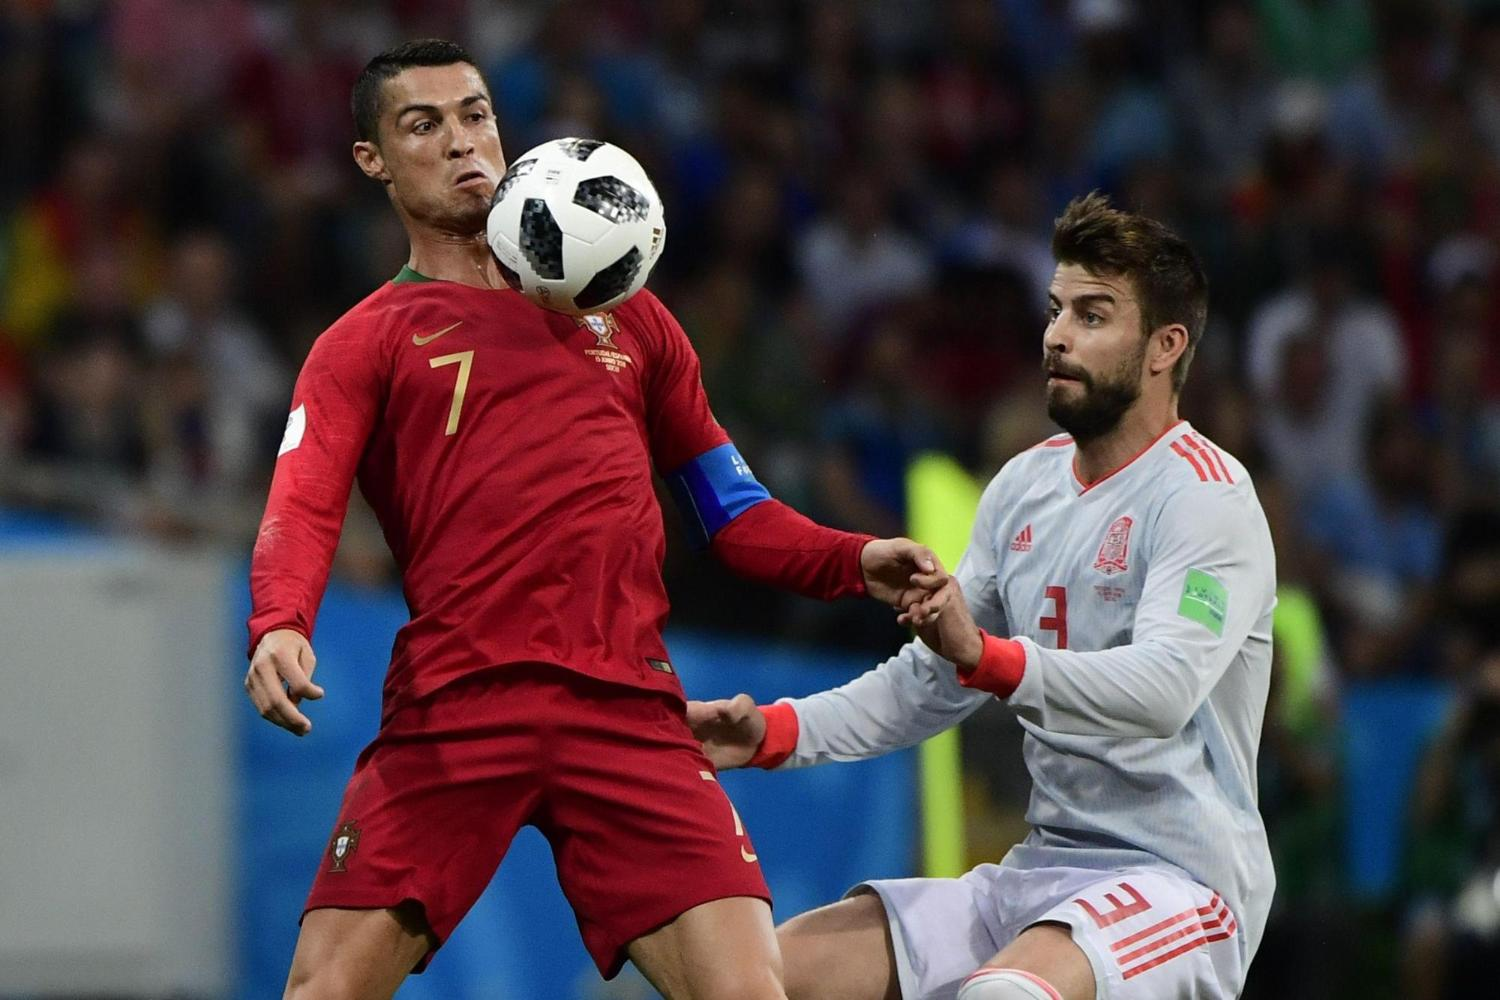 Gerard Pique: Cristiano Ronaldo 'has a habit of throwing himself to the ground' https://t.co/s6kFVoMxH1 https://t.co/KvX3E9K8Hy